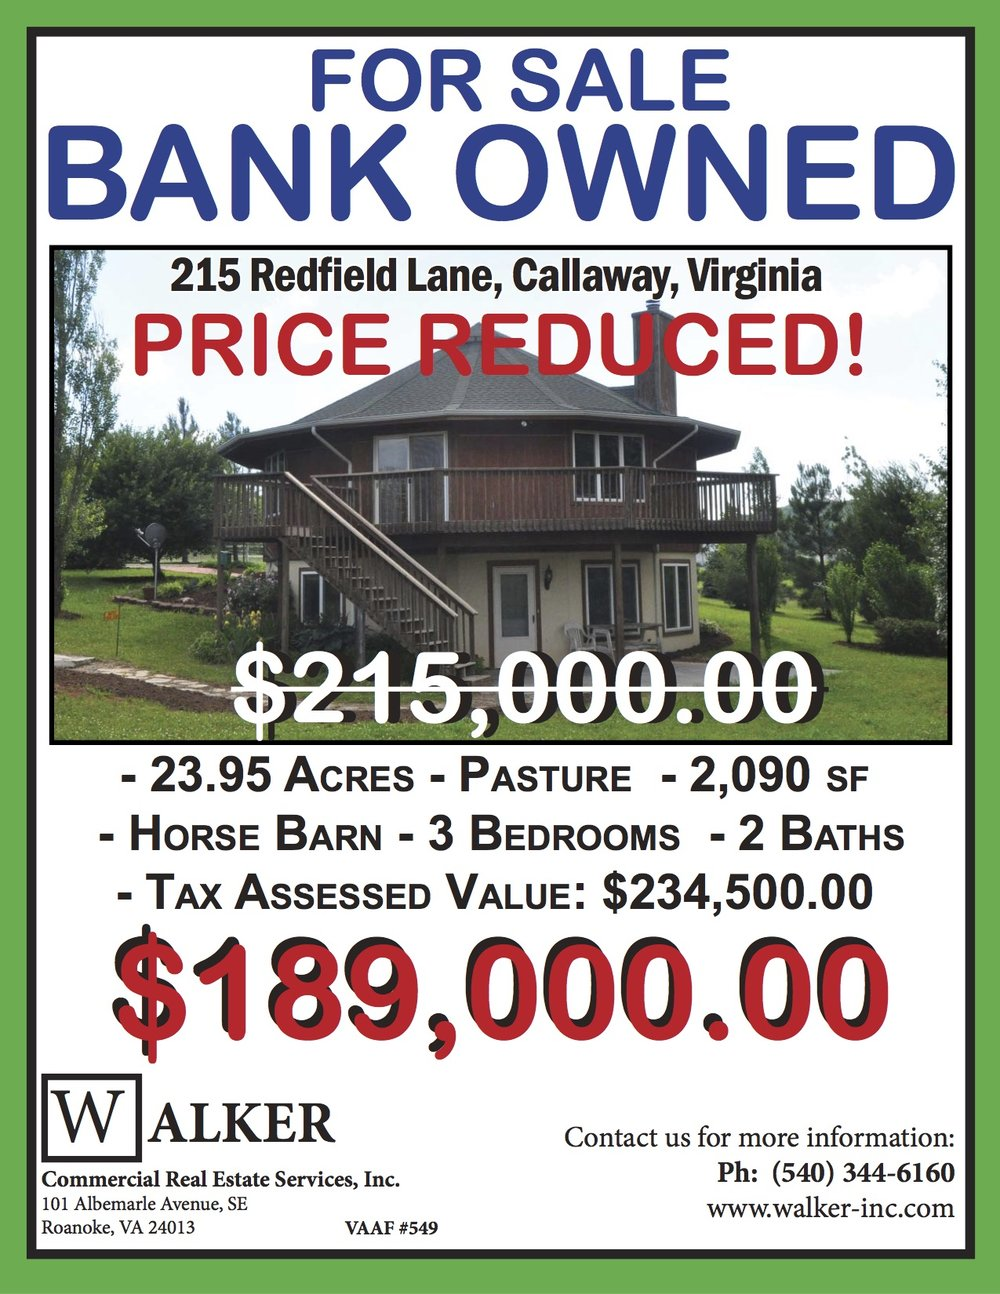 680_0_215_Redfield_Lane__Callaway_Va_Brochure.jpg